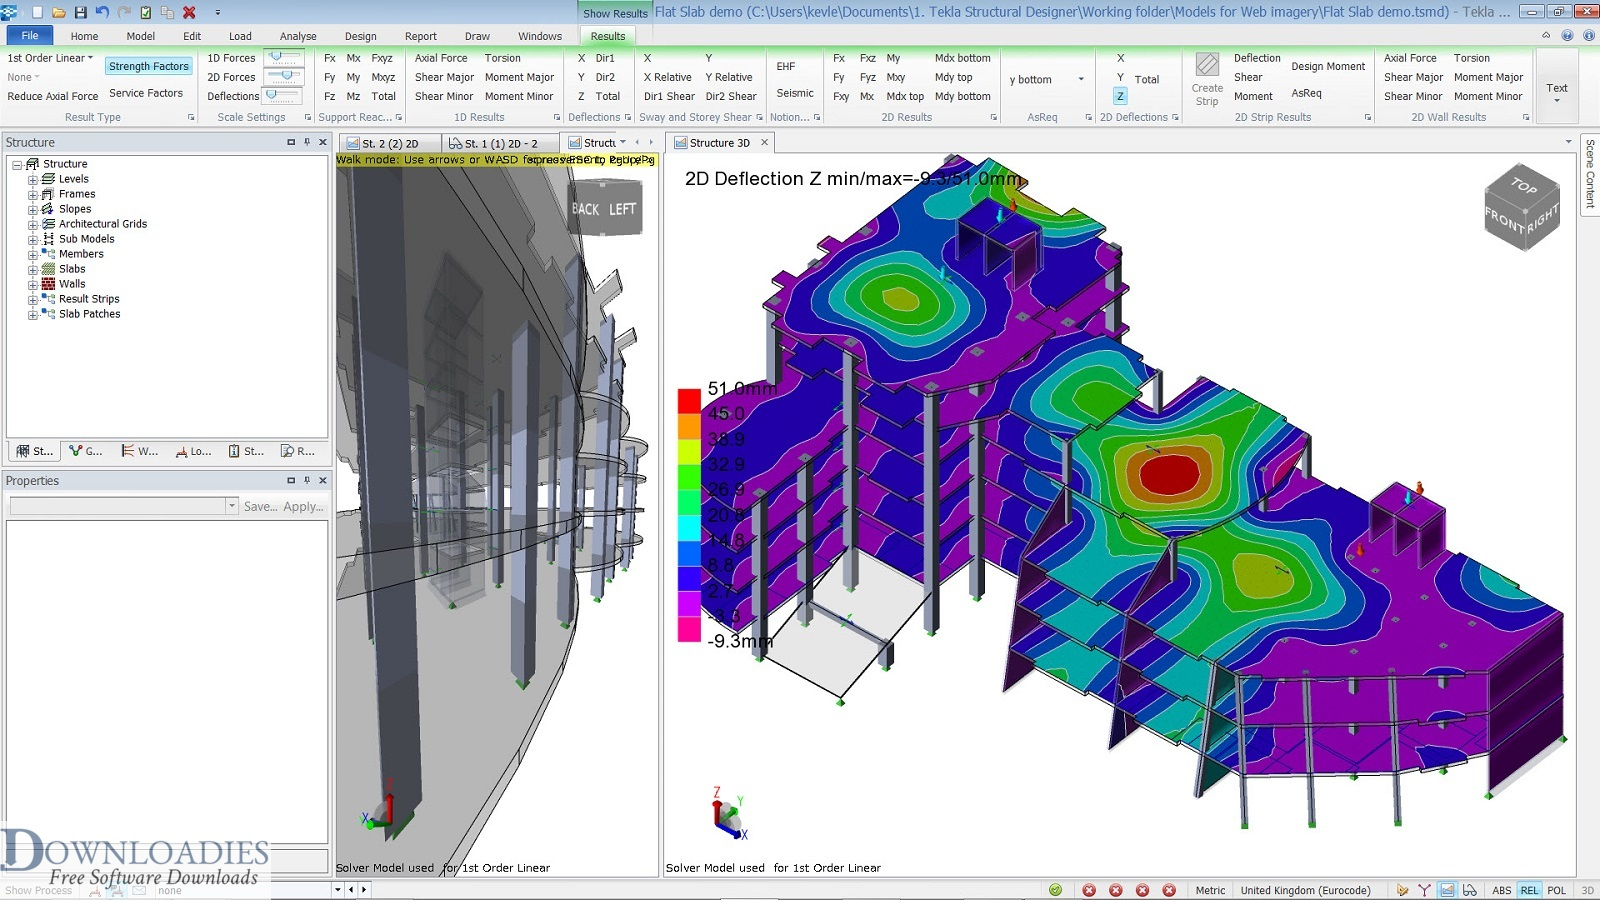 Download free Tekla Structural Designer 2019 SP2 v19.0